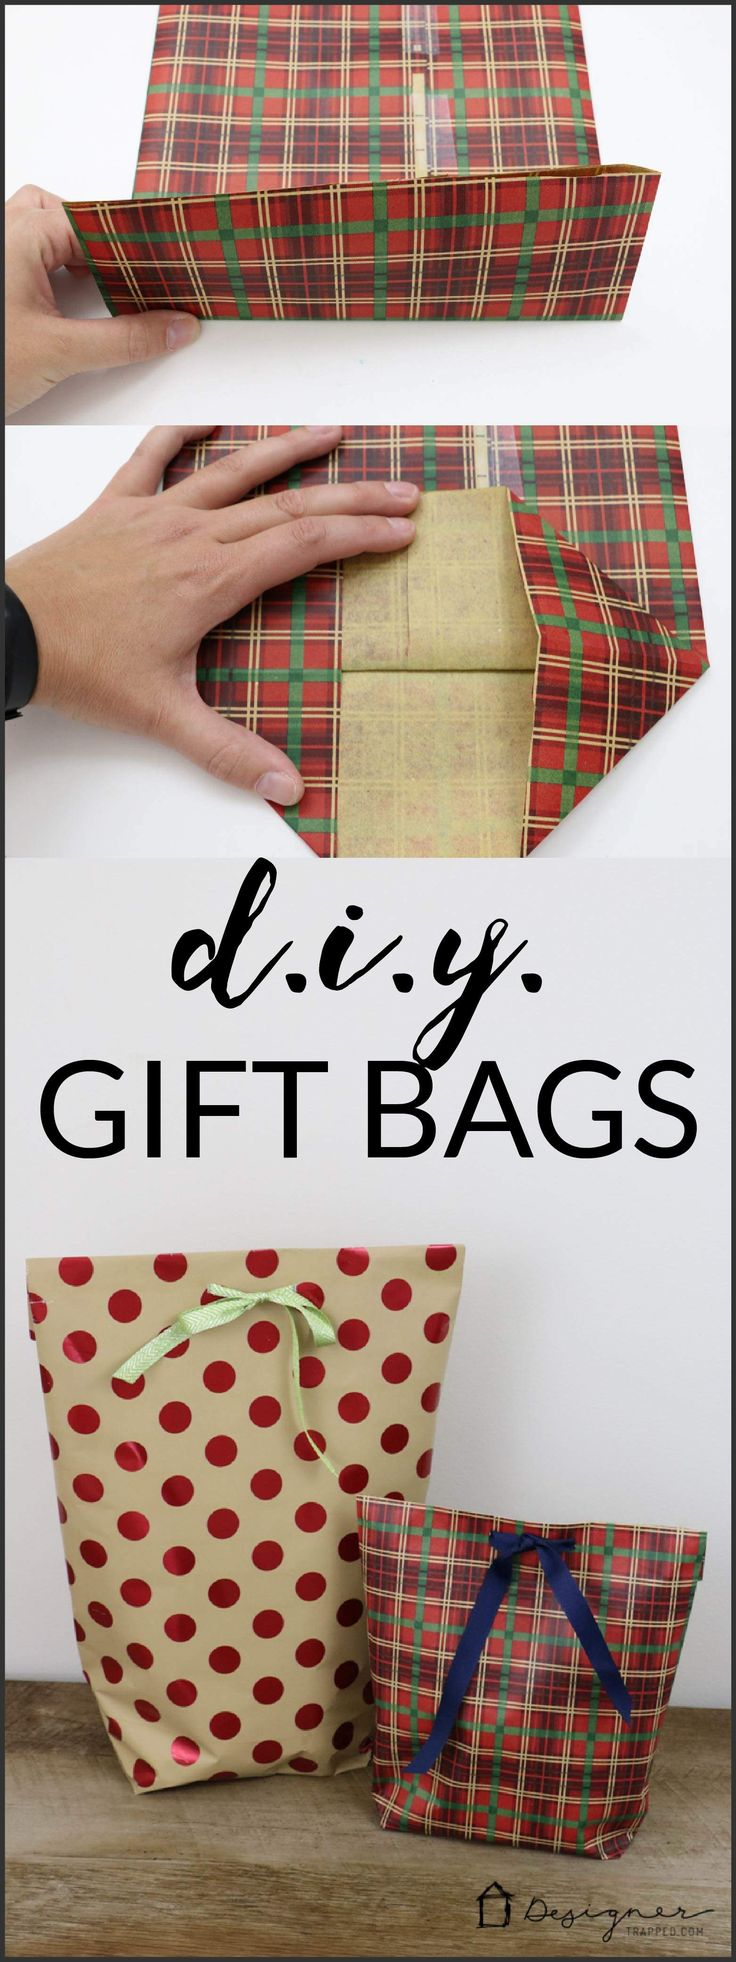 Best 25+ Christmas Gift Bags Ideas On Pinterest  Diy Christmas Wrapping  Paper, Wrapping Ideas And Gift Wrapping Ideas Christmas